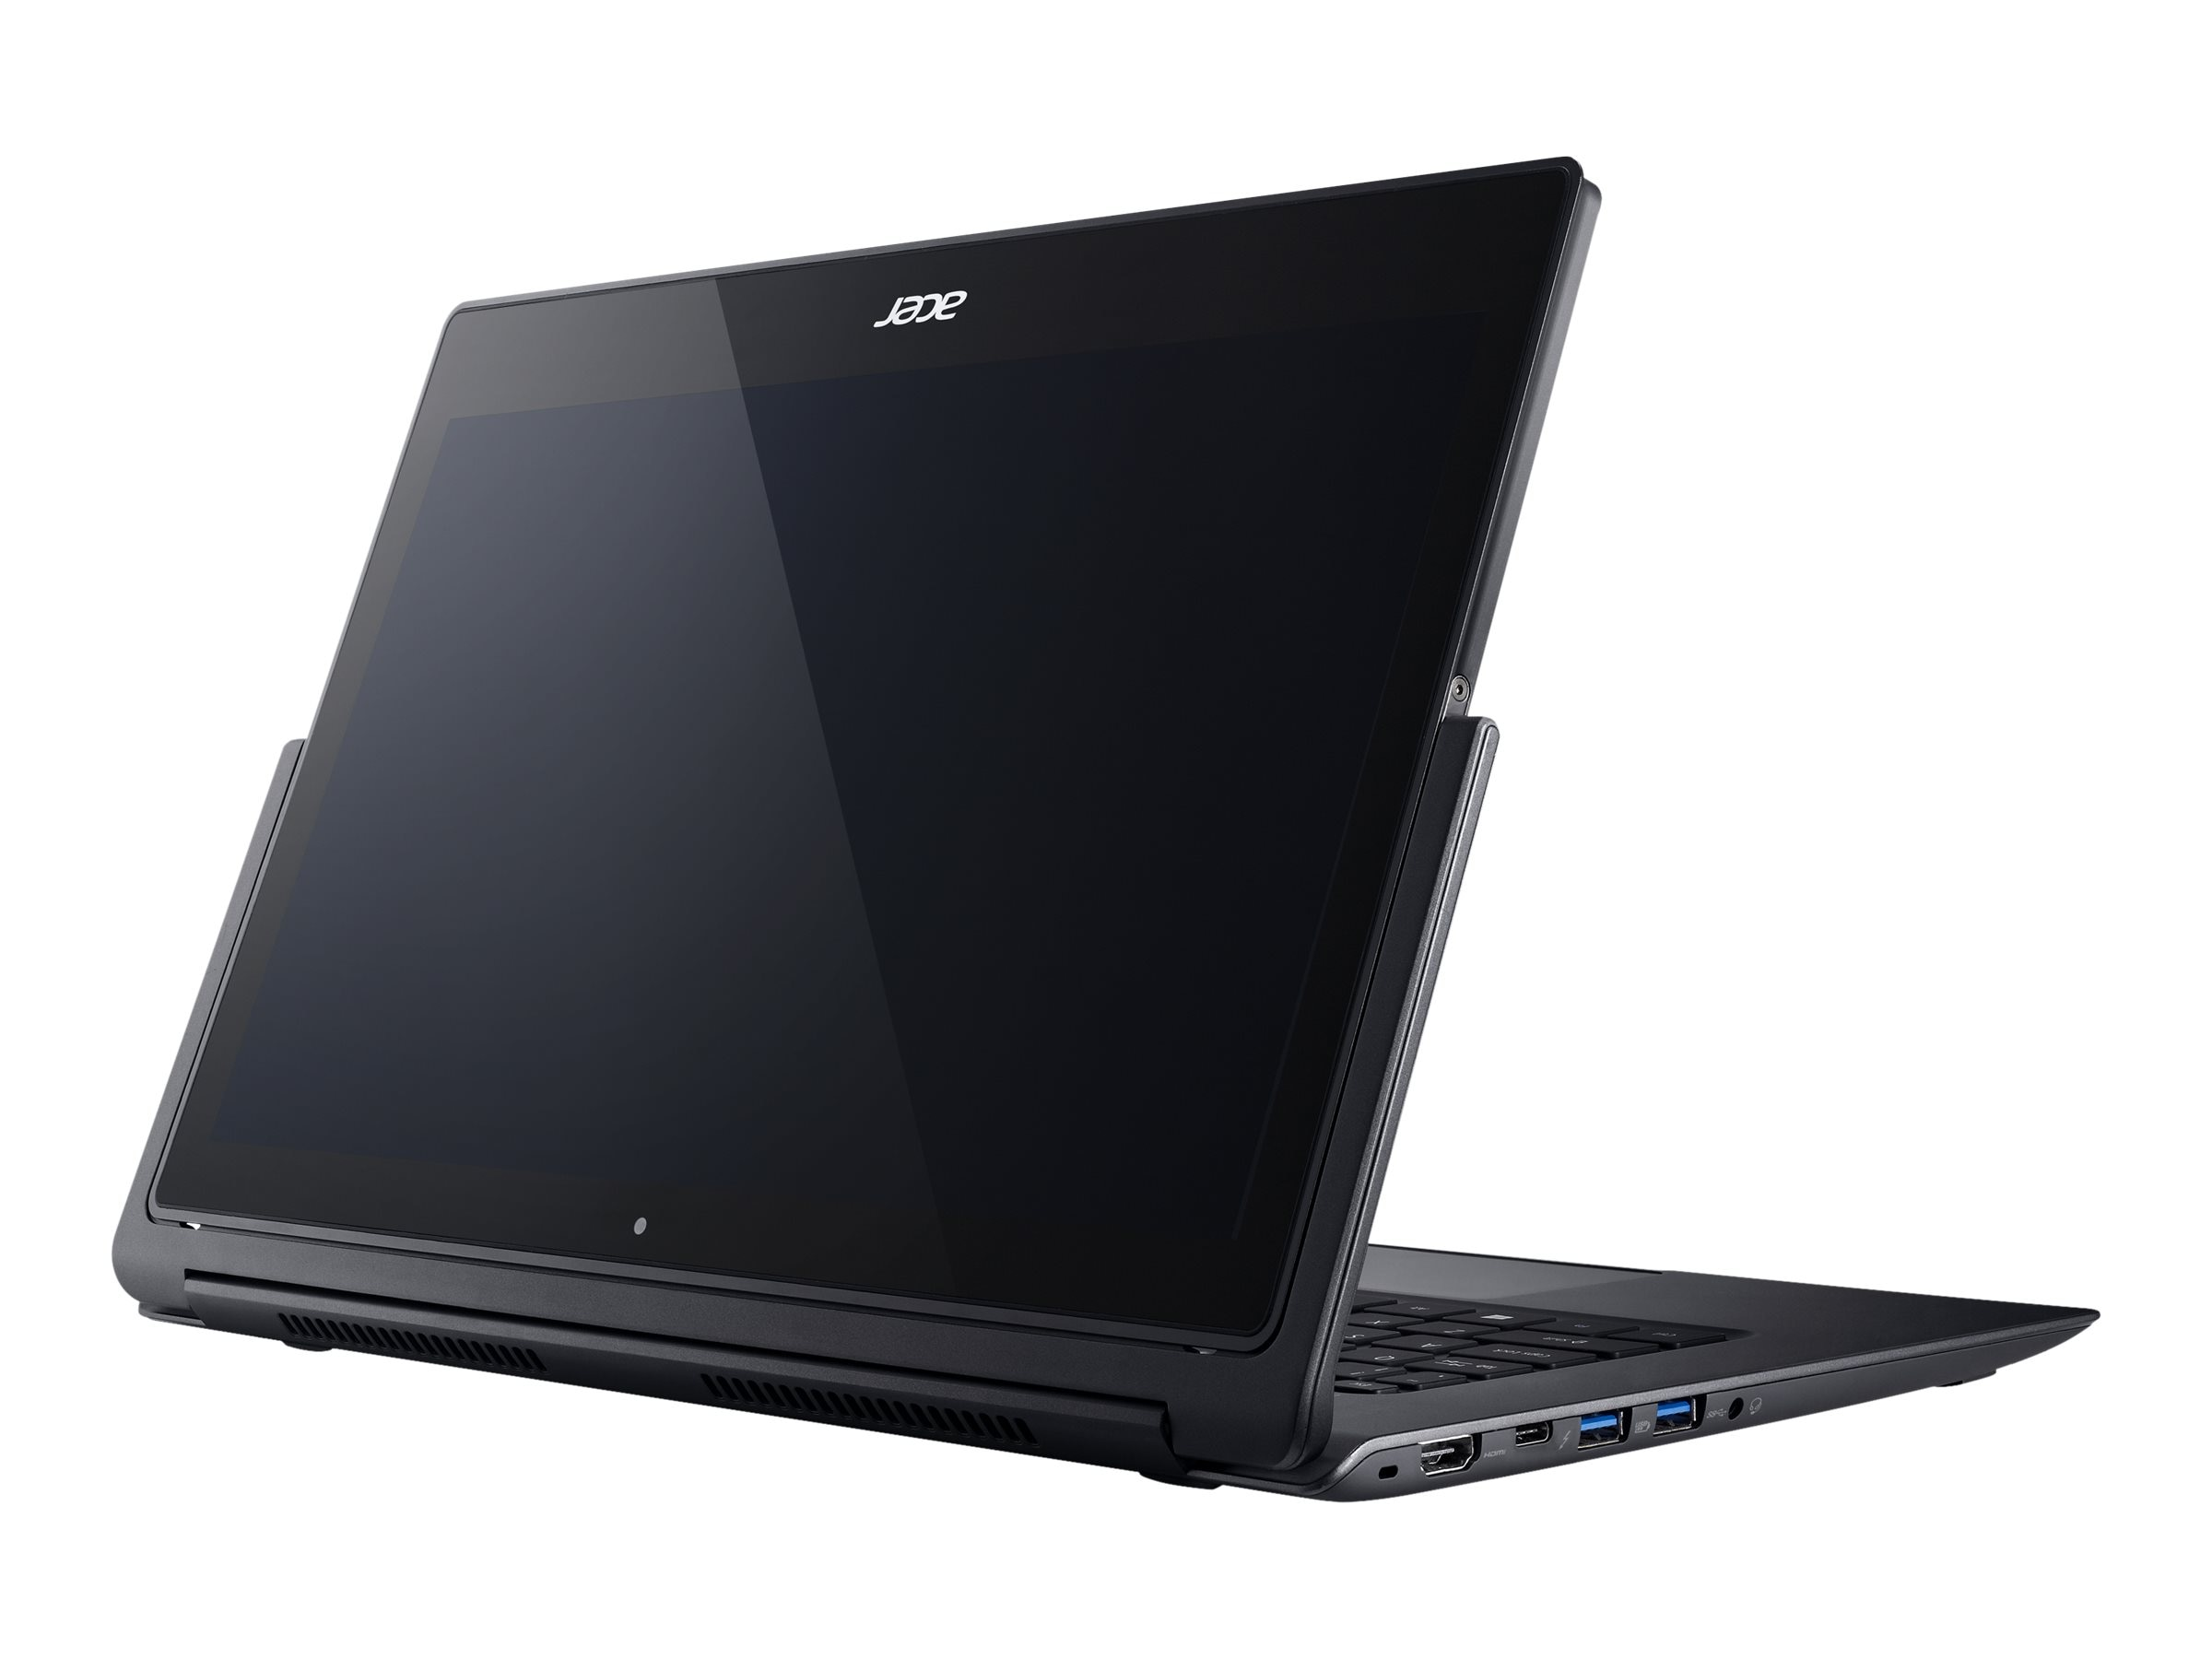 Acer NX.G8TAA.002 Image 13